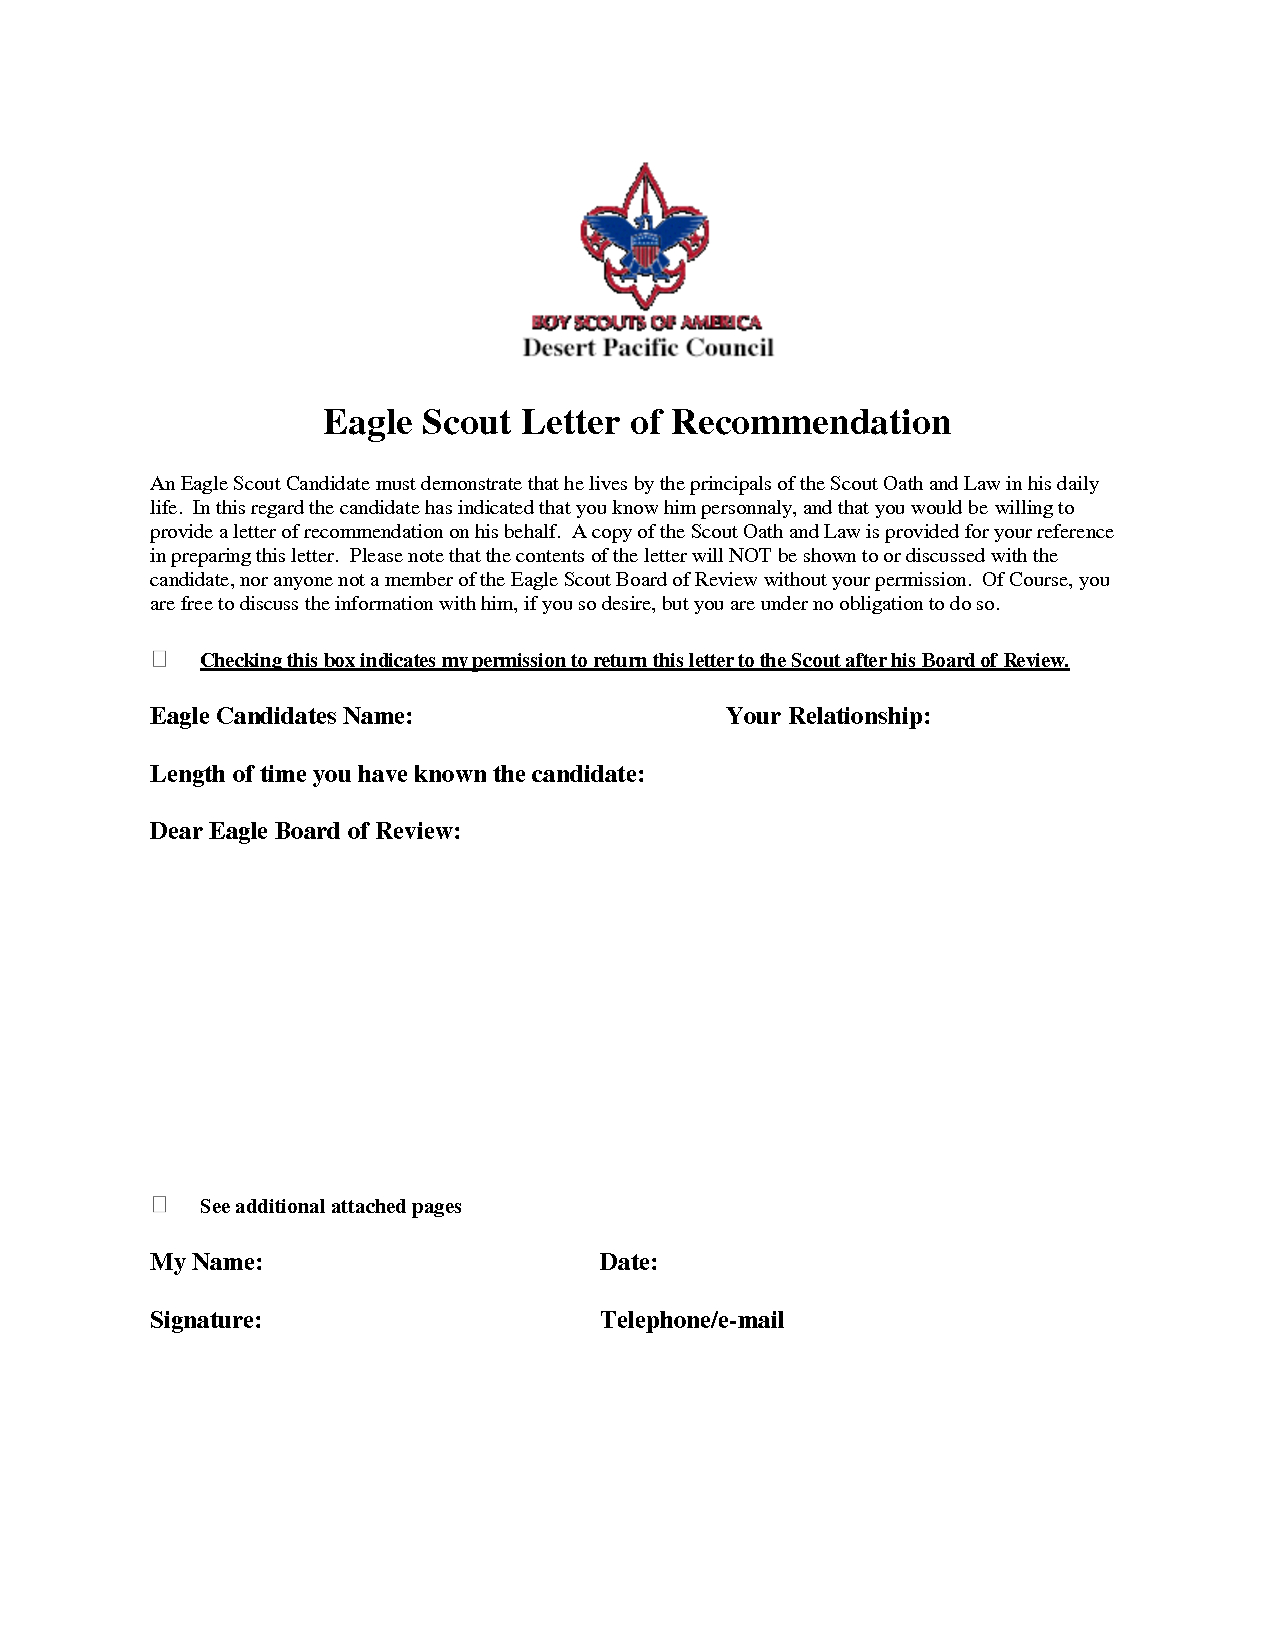 Boy Scout Donation Letter Template - Eagle Scout Re Mendation Letter Sample